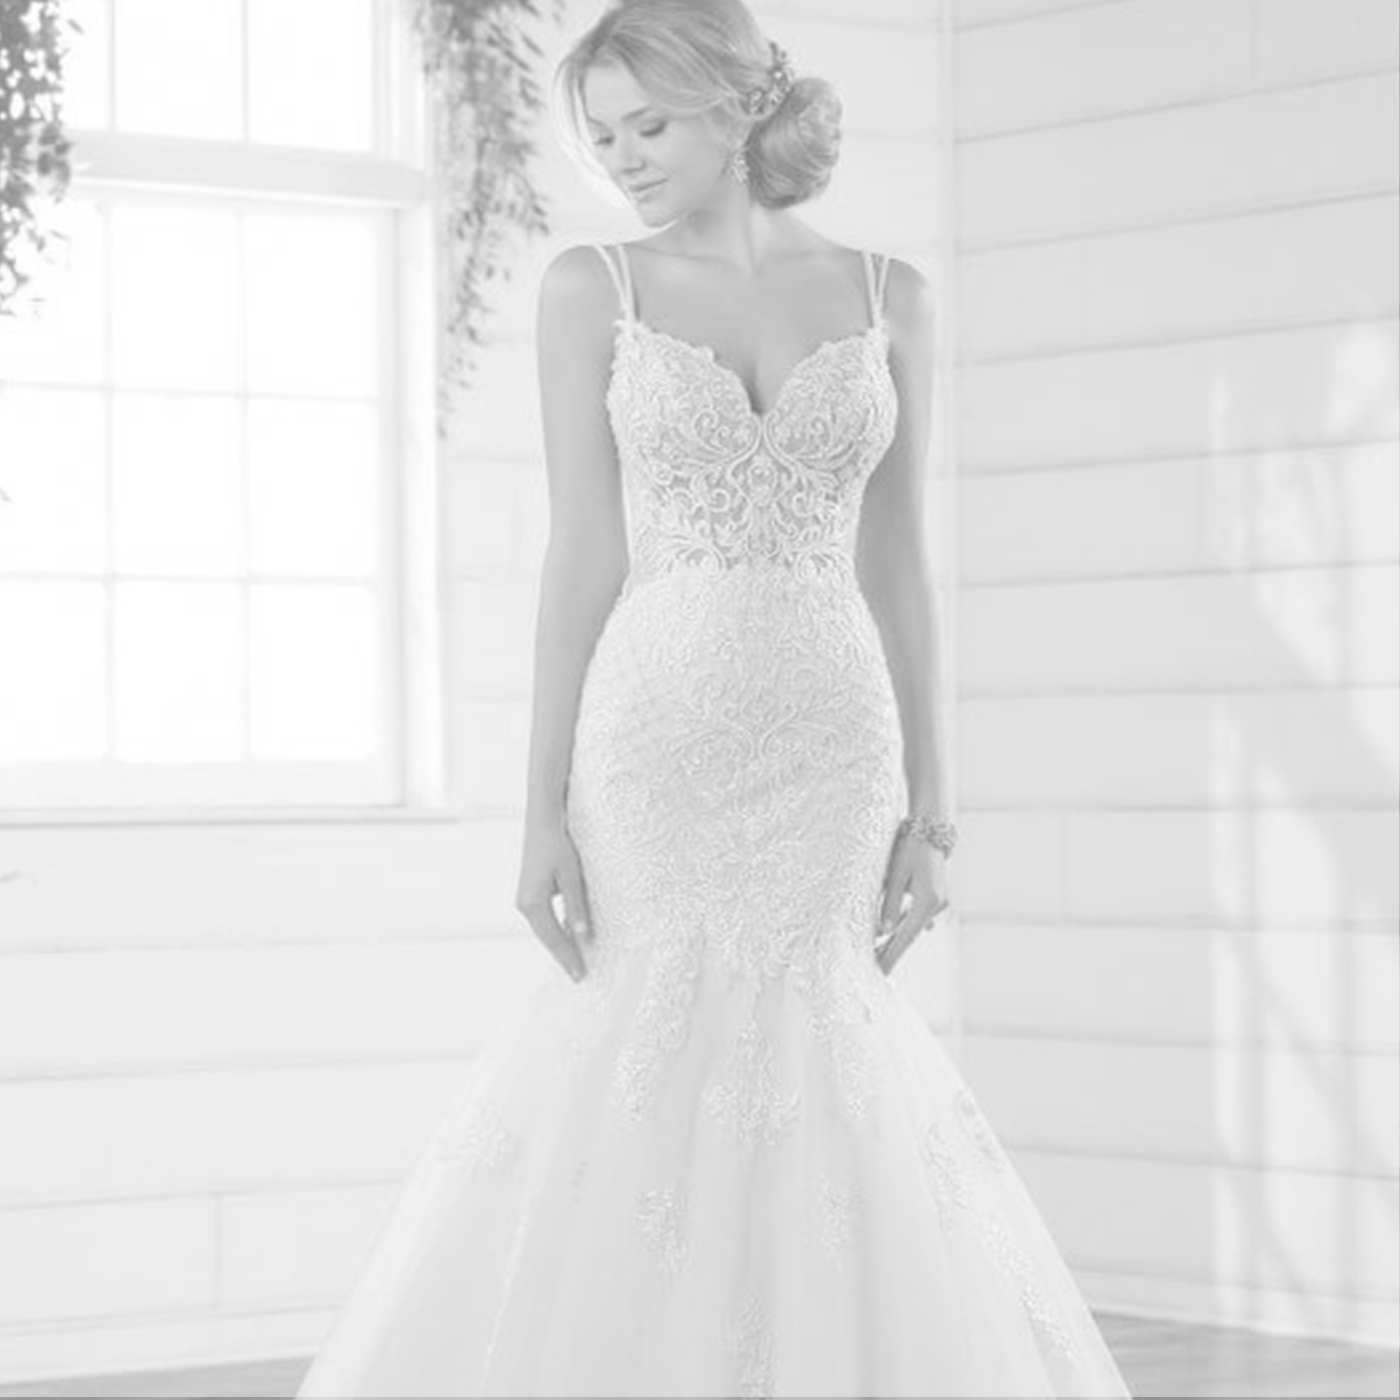 Essense of Australia - We couldn't help but let our jaws drop at this collection, because there's literally something for everybody! From sleek crepe sheaths to opulent princess ballgowns, the collection is not limited to one style of bride.starting at $1,500